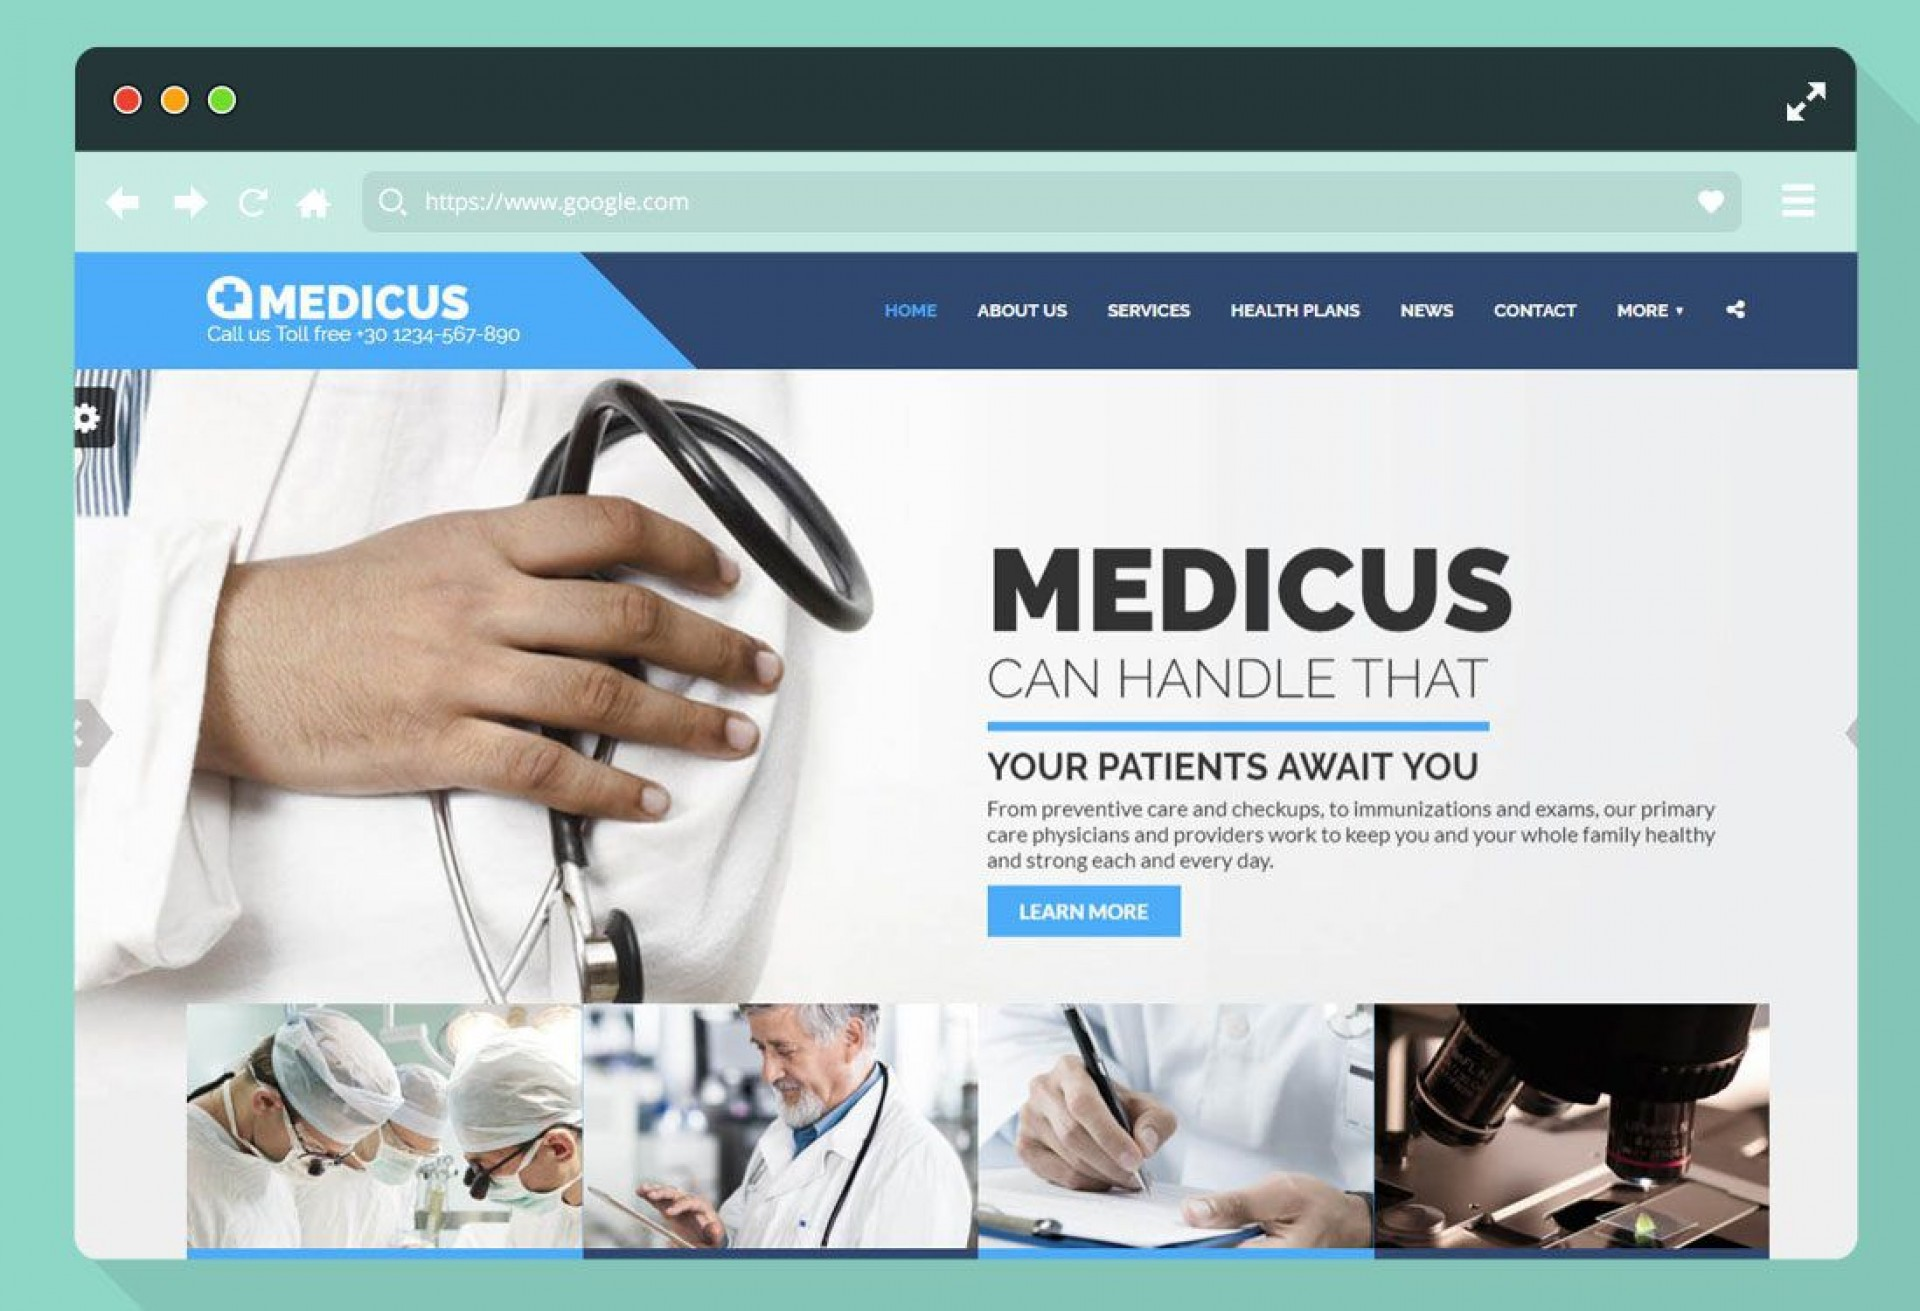 002 Astounding Free Website Template Download Html And Cs Jquery For Hospital Concept 1920